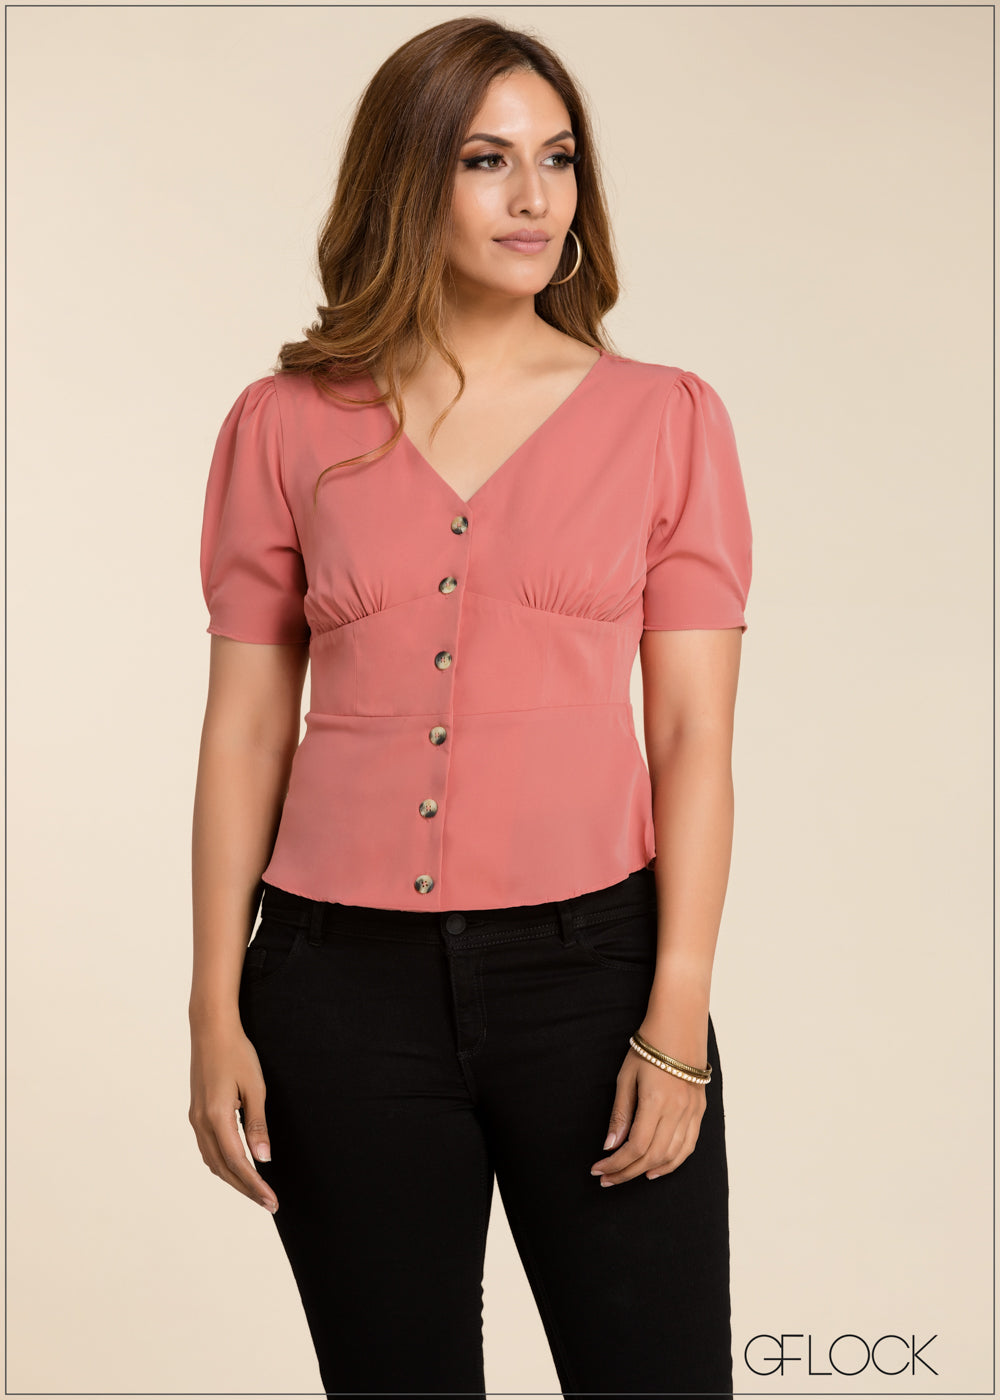 V Neck Button Detailed Top - GFLOCK.LK